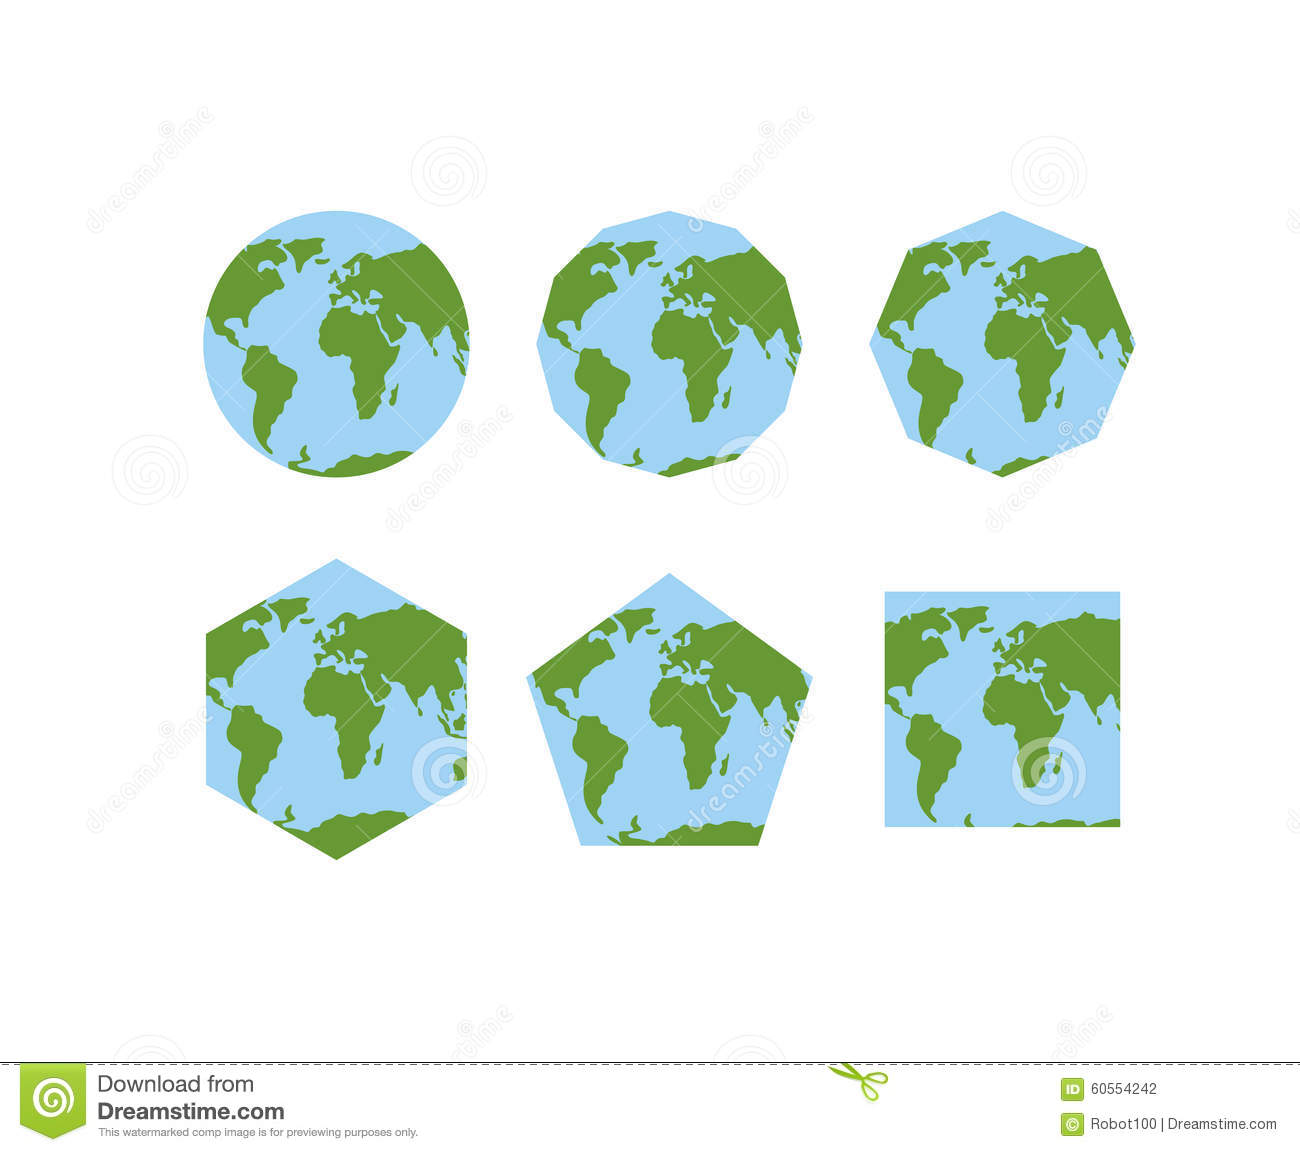 set of geometric shapes of world atlases map of planet earth